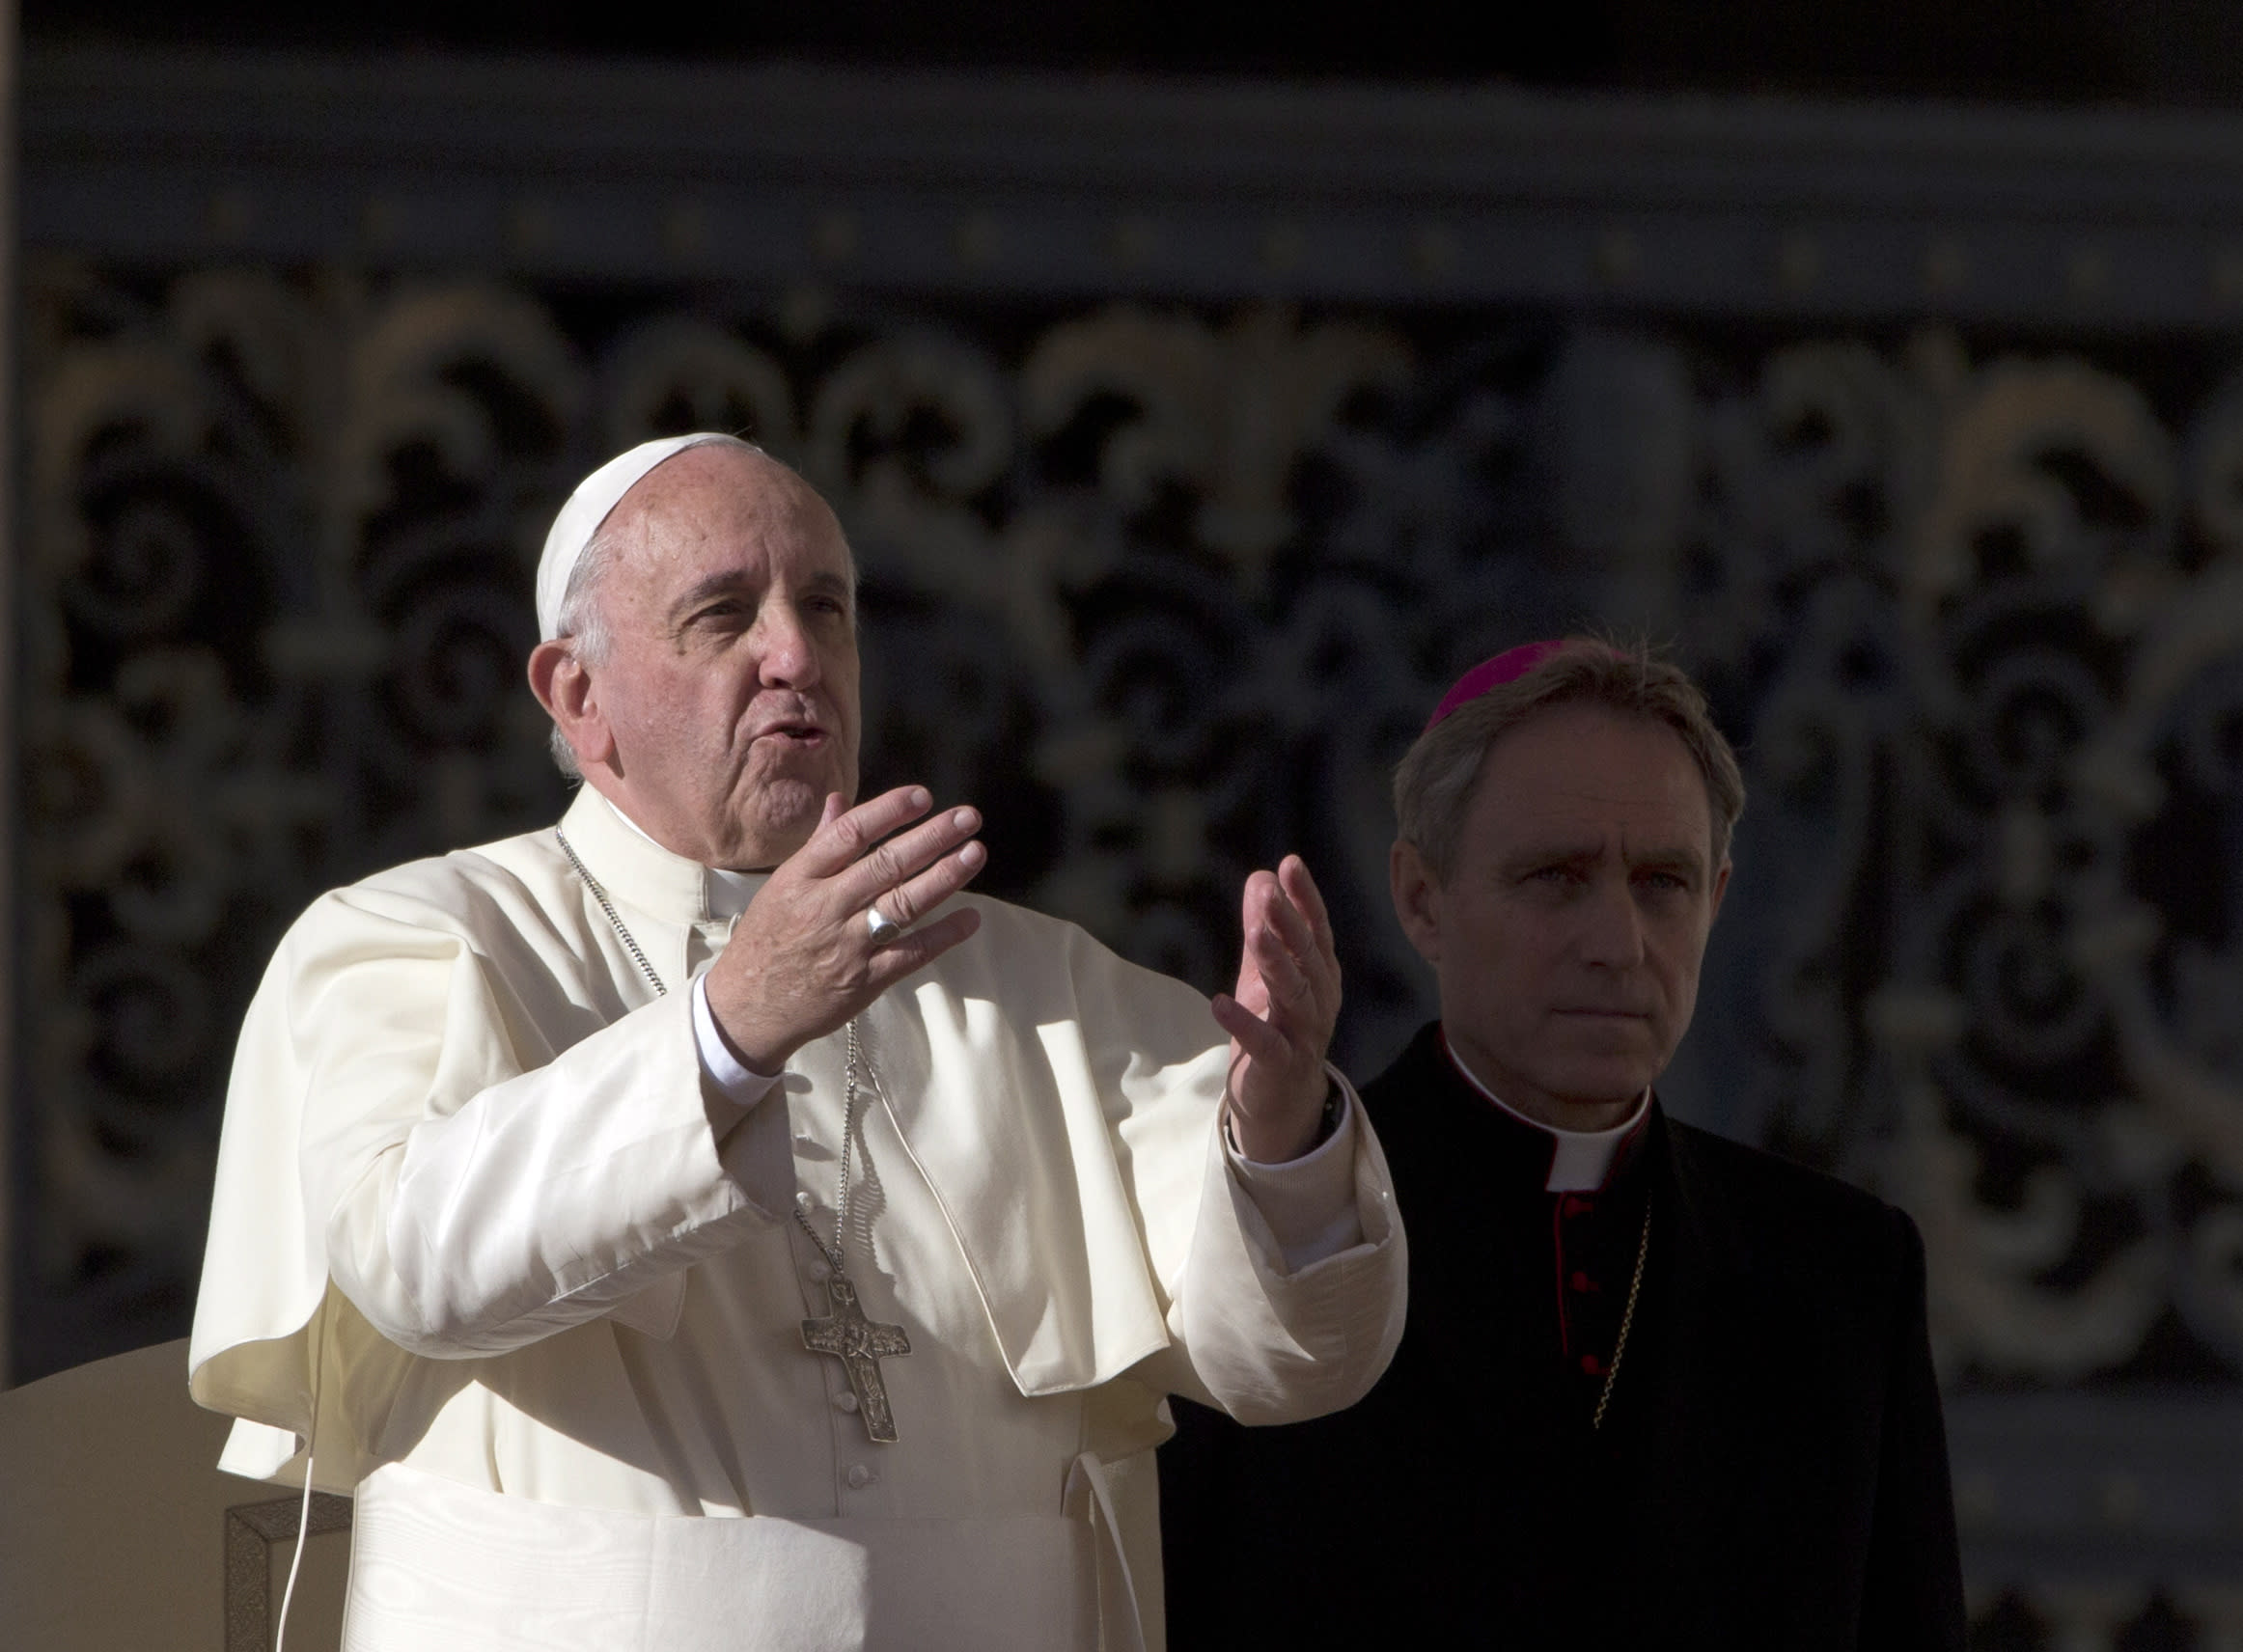 Pope Benedict helped free American from Cuba